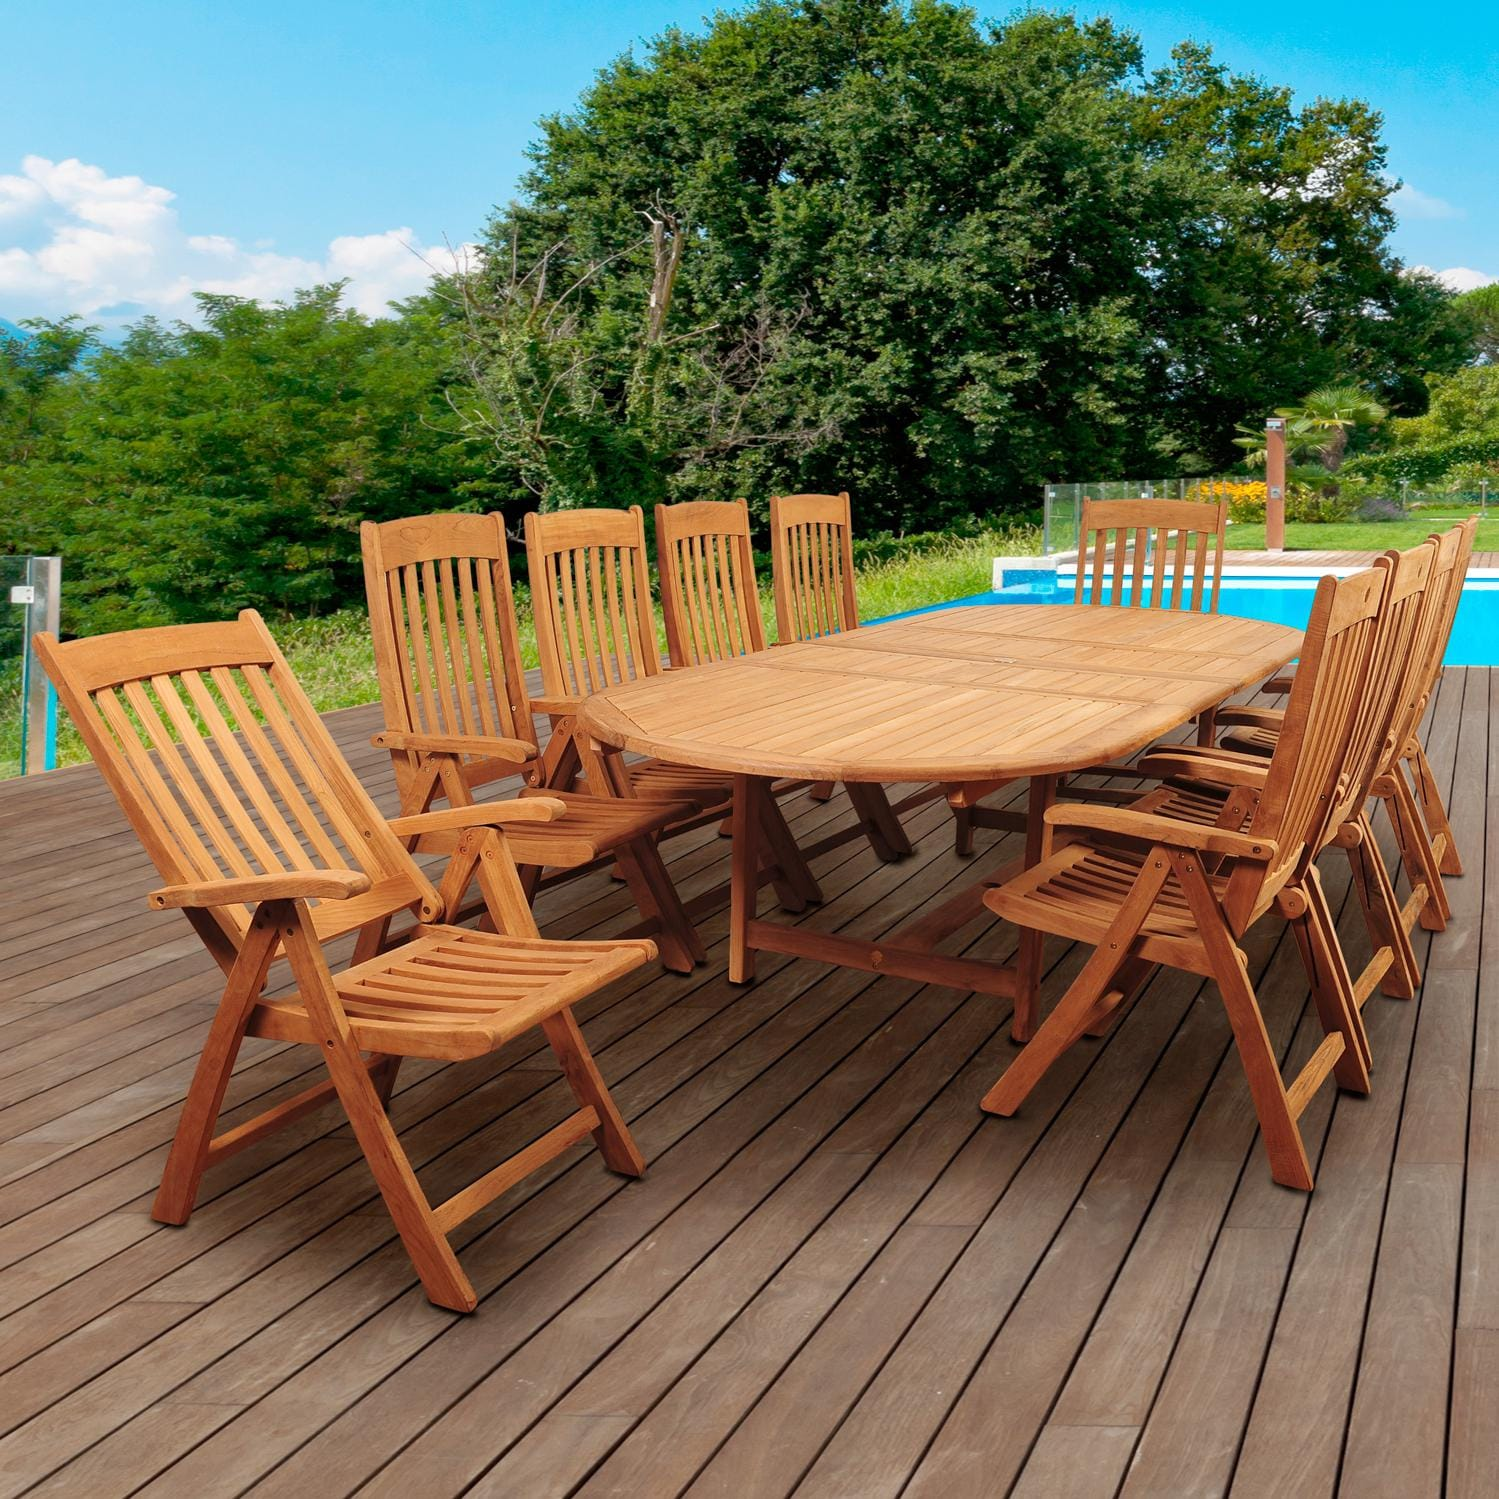 Teak Patio Dining Sets Home Design Ideas and